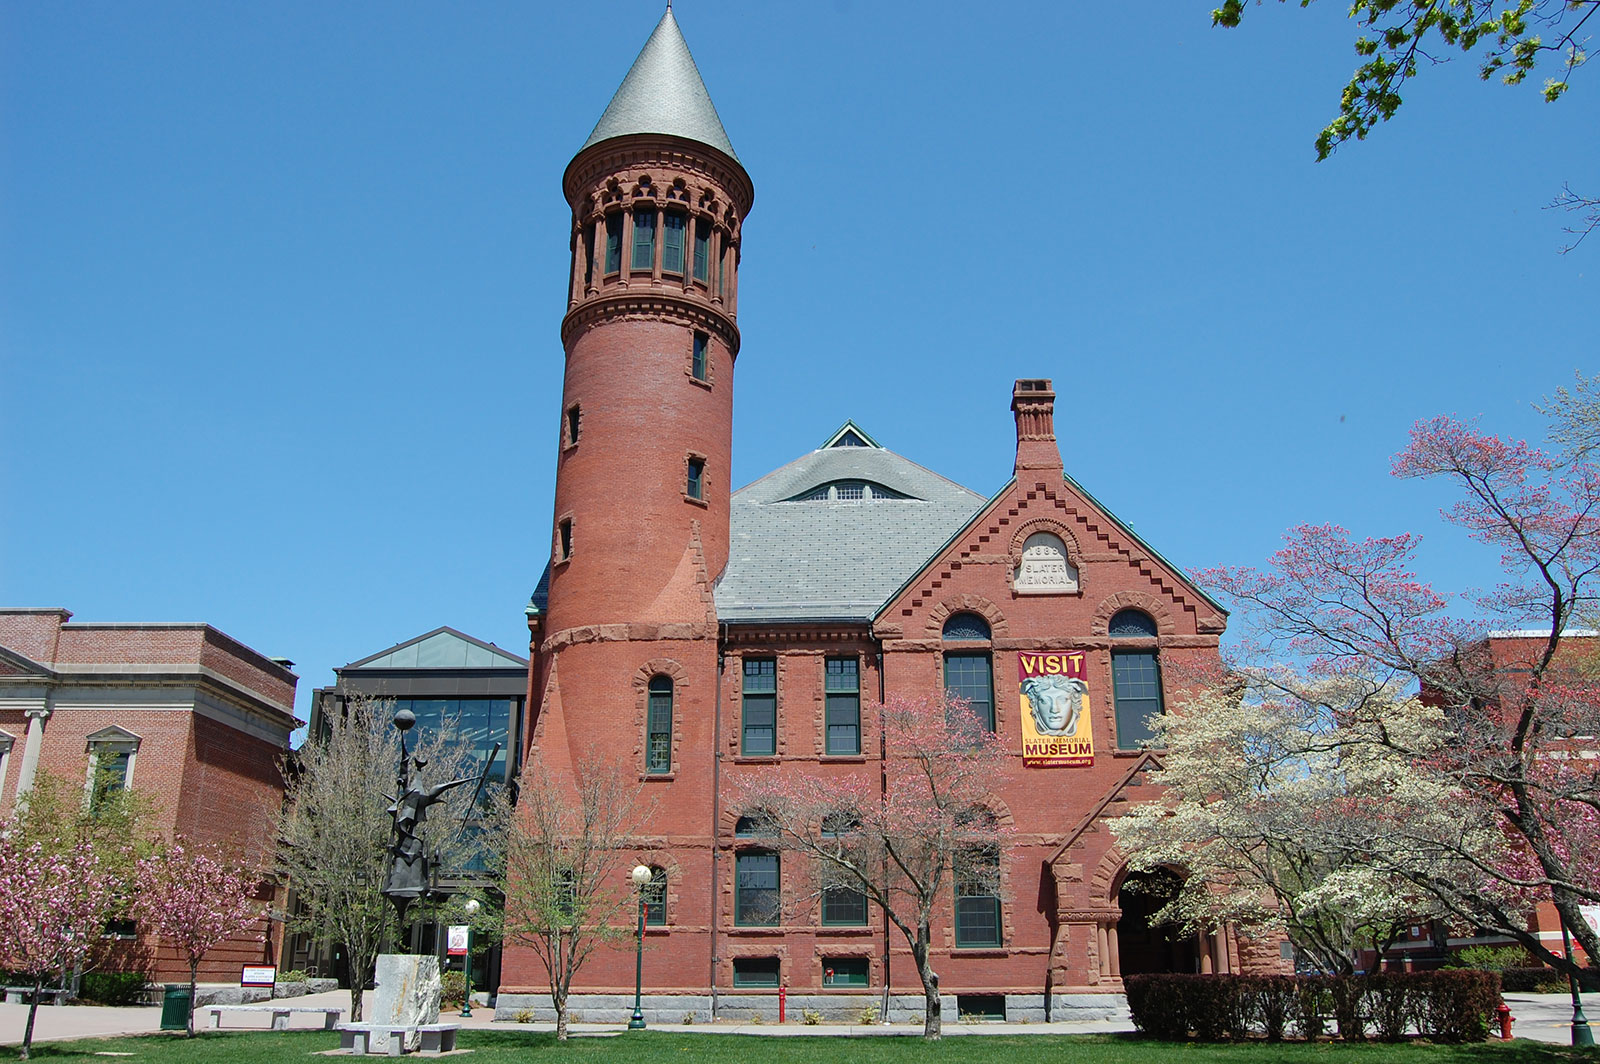 Slater Memorial Museum is a Romanesque Revival building designed by Stephen C. Earle. (source: Slater Memorial Museum)